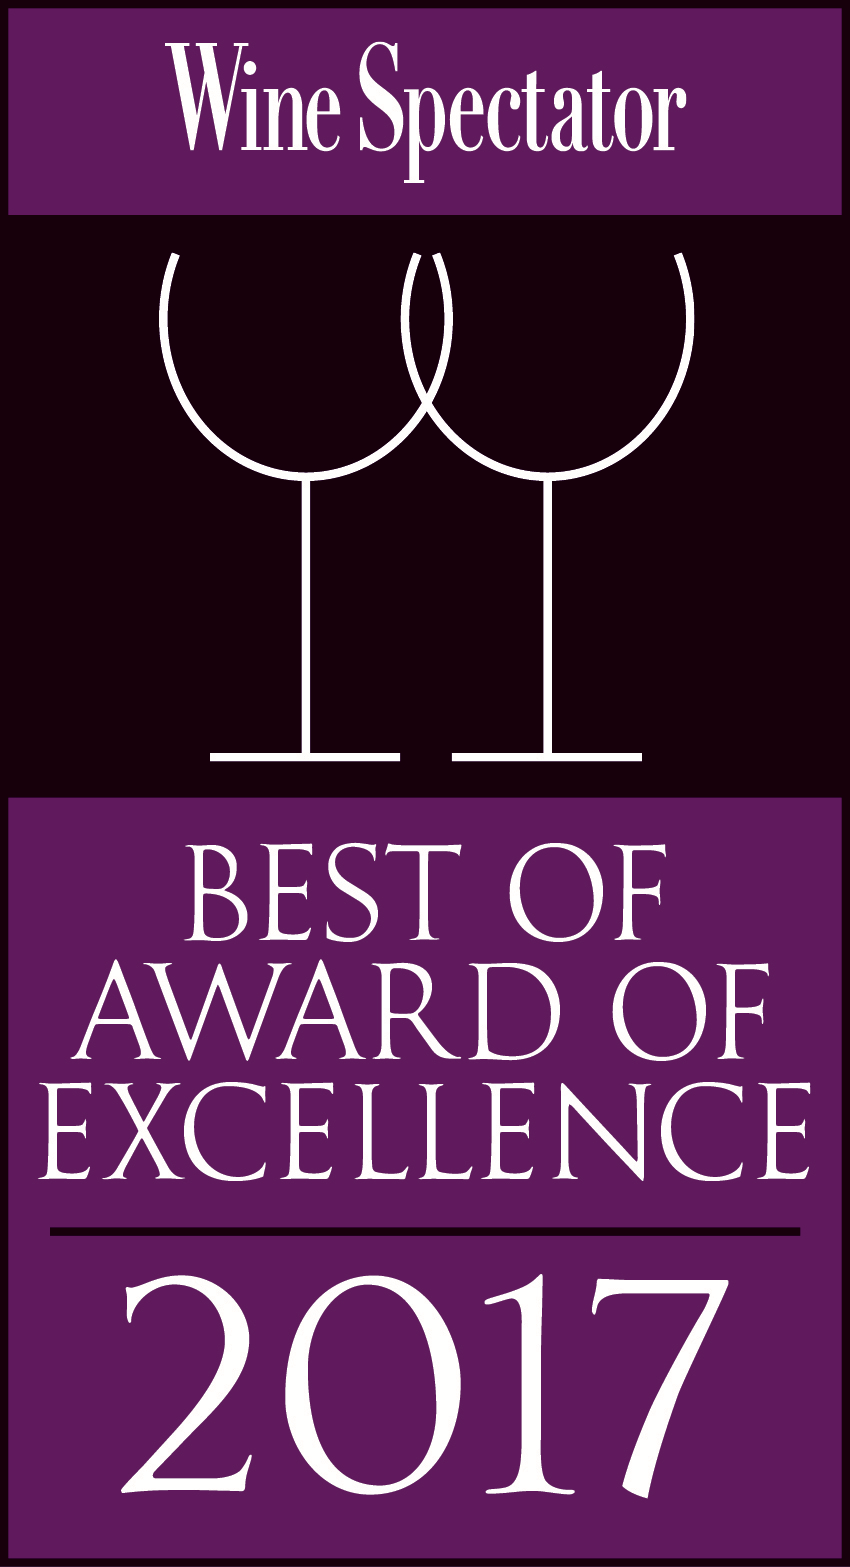 Wine Spectator 2017color.png